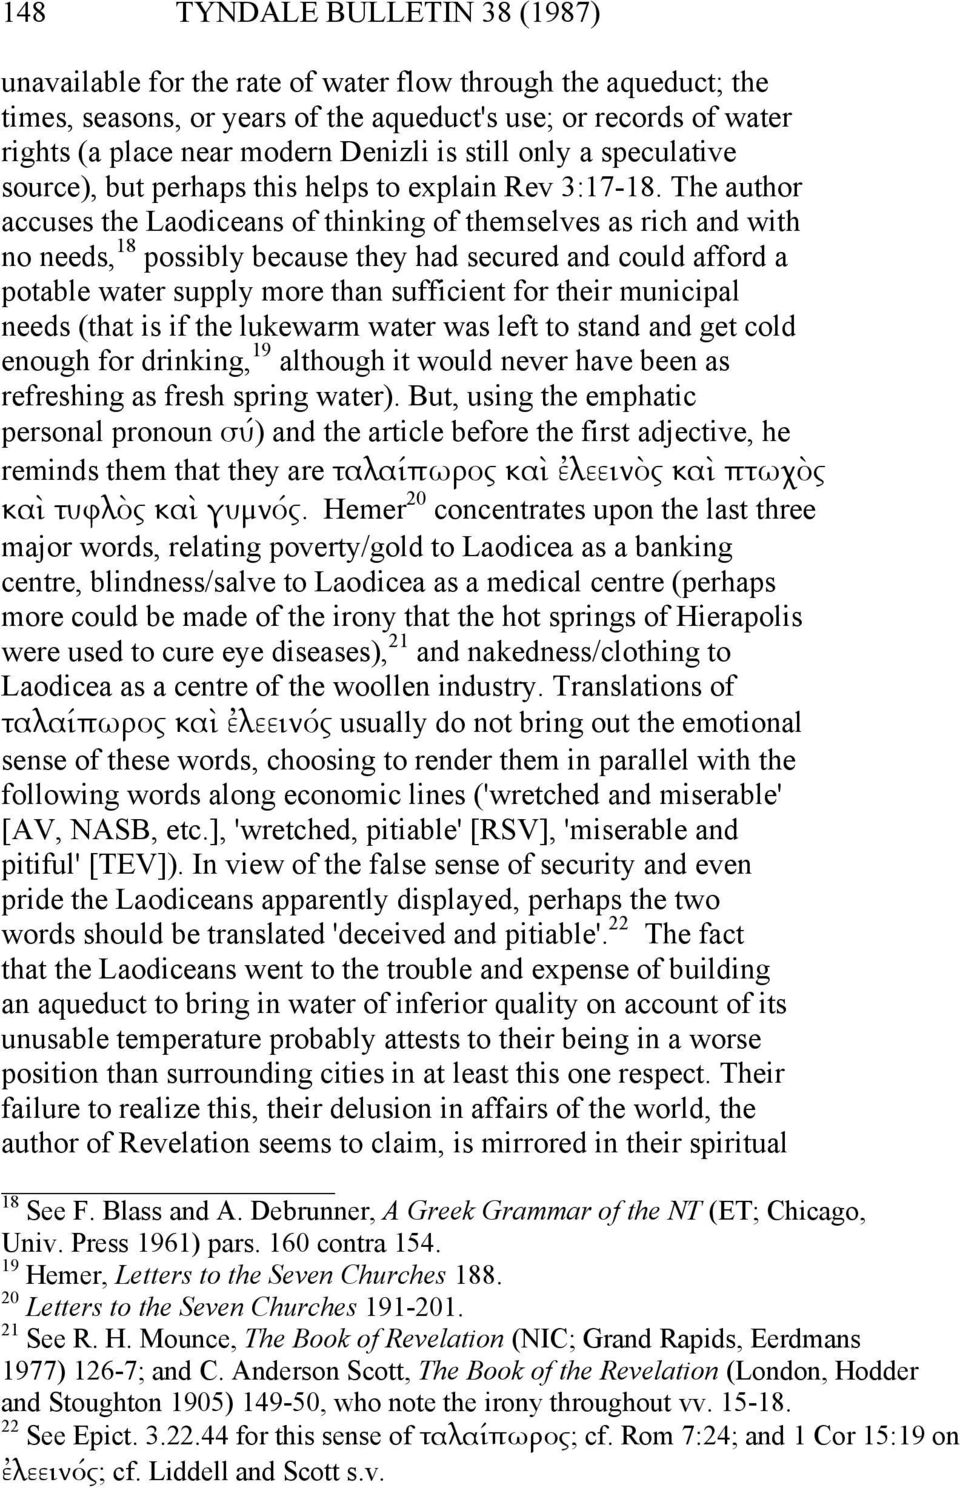 The author accuses the Laodiceans of thinking of themselves as rich and with no needs, 18 possibly because they had secured and could afford a potable water supply more than sufficient for their